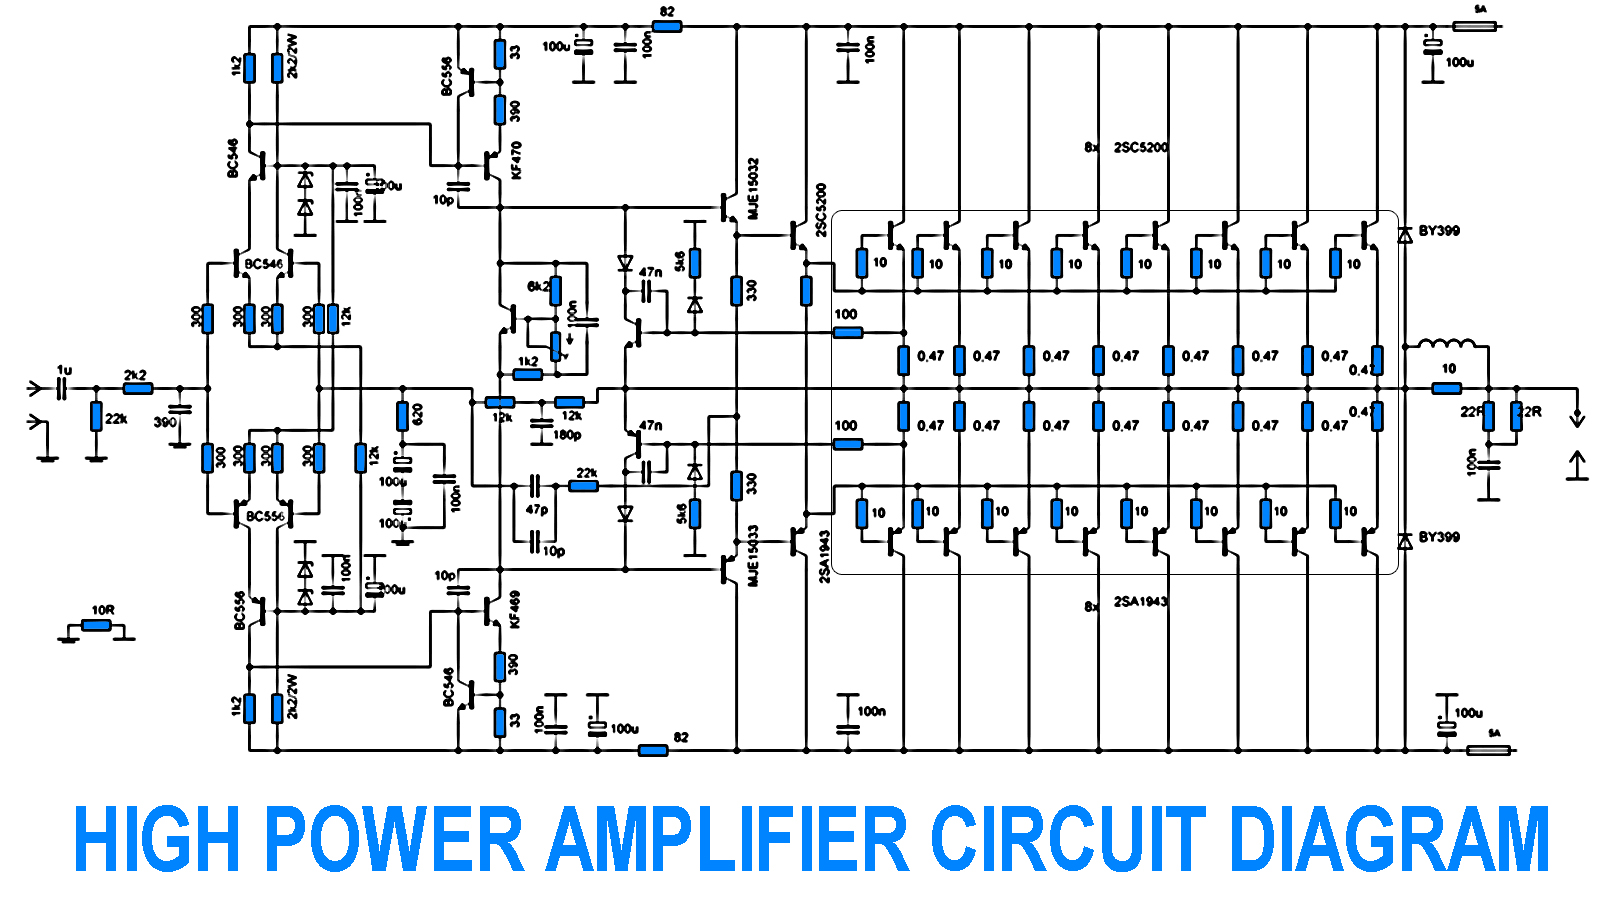 hight resolution of 2sc5200 2sa1943 amplifier circuit 700w power amplifier with 2sc5200 2sa1943 2sc5200 2sa1943 amplifier circuit